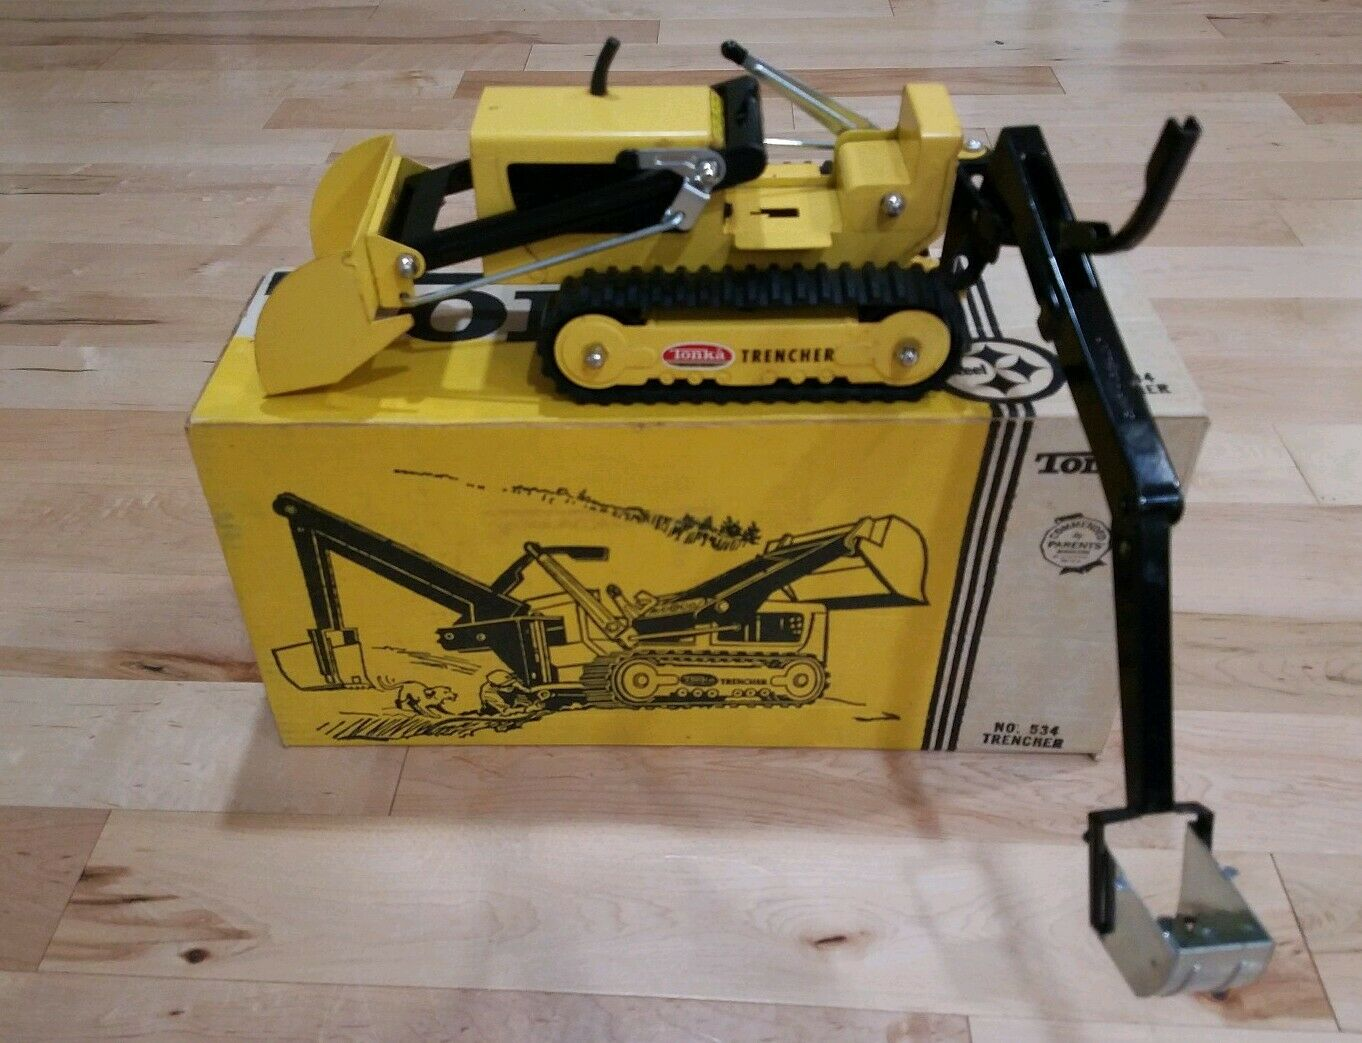 TONKA VINTAGE TOY TRENCHER 1960s PRESSED STEEL No. 534 With BOX GOOD WORKING CON